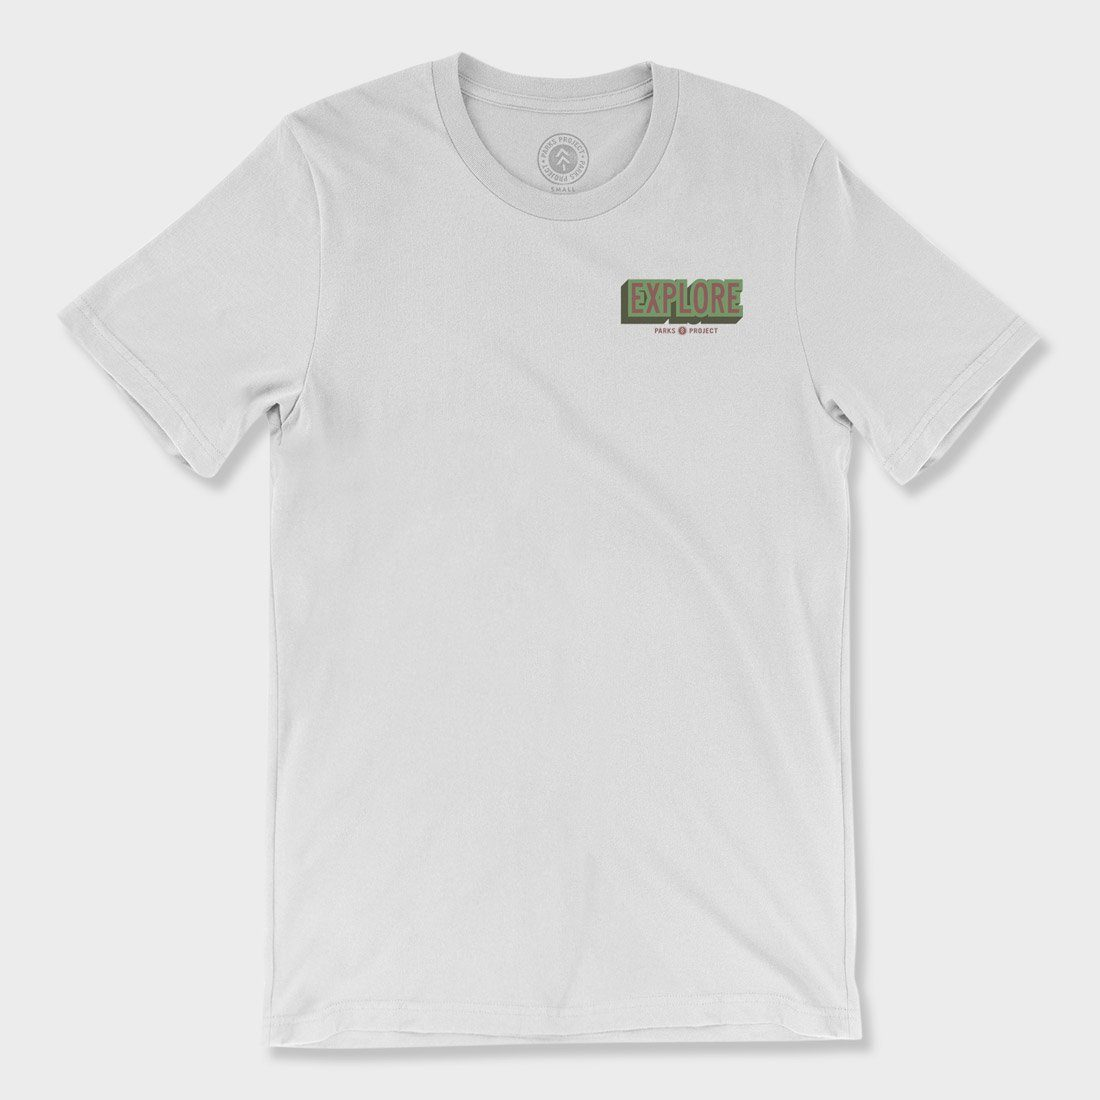 Parks Project Explore National Parks T-Shirt White